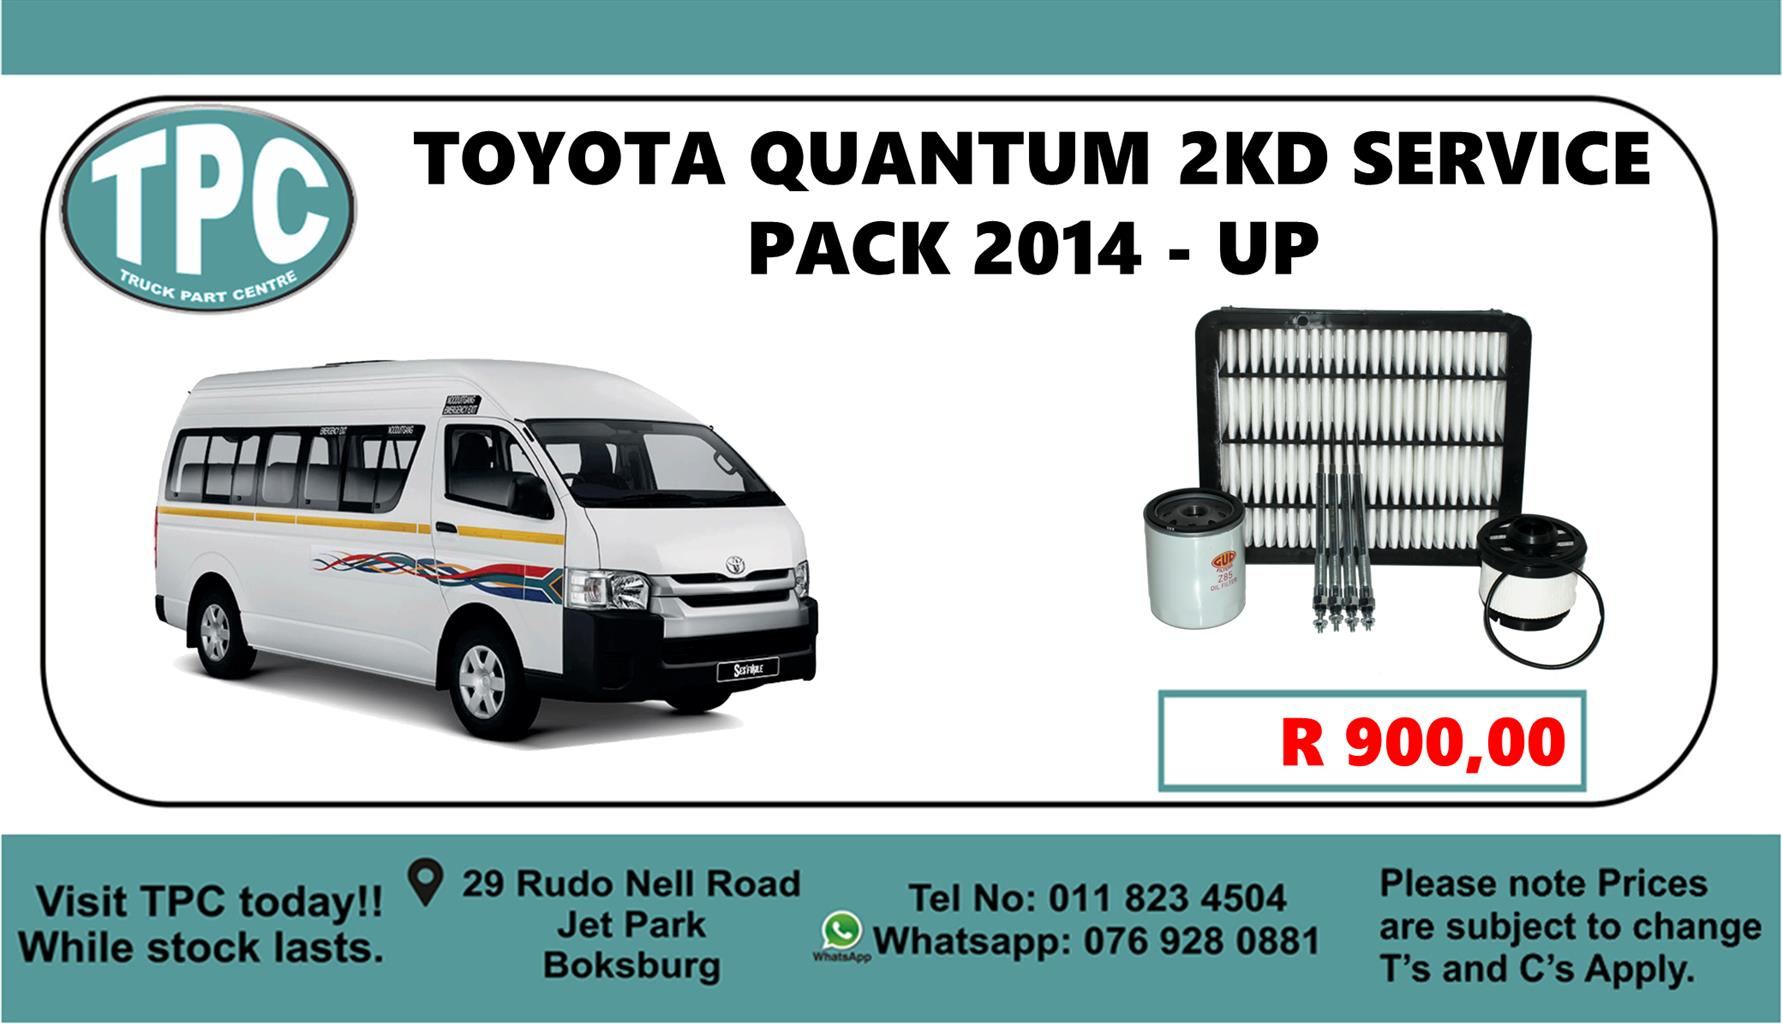 Toyota Quantum 2KD Service Pack 2014 - Up - For Sale at TPC.